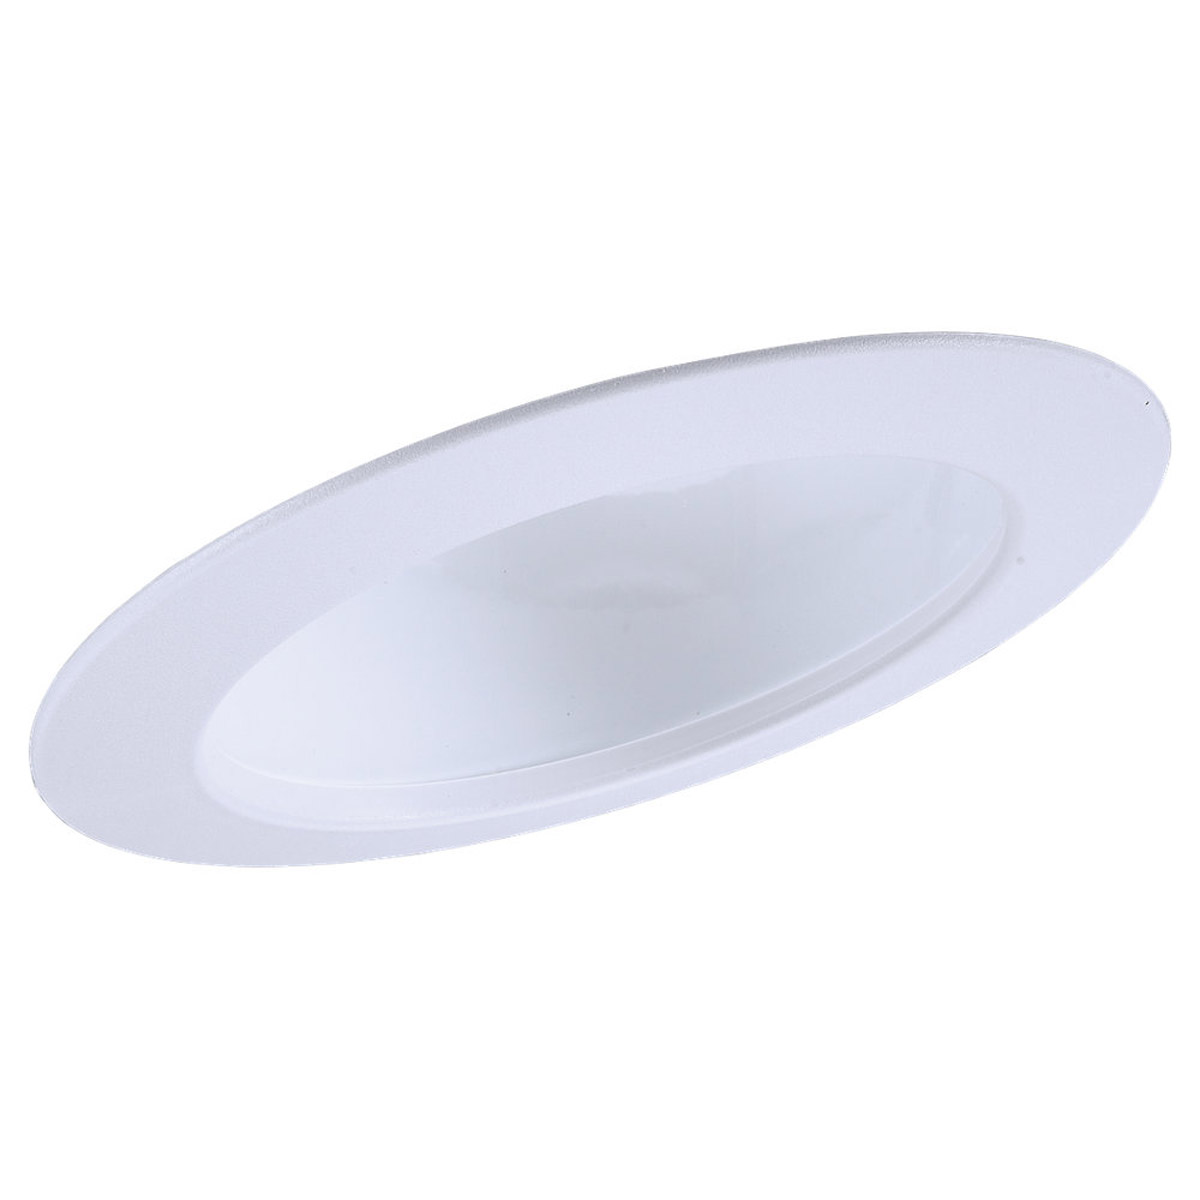 Sea Gull Lighting Signature Recessed Trim Only in White 1122-14